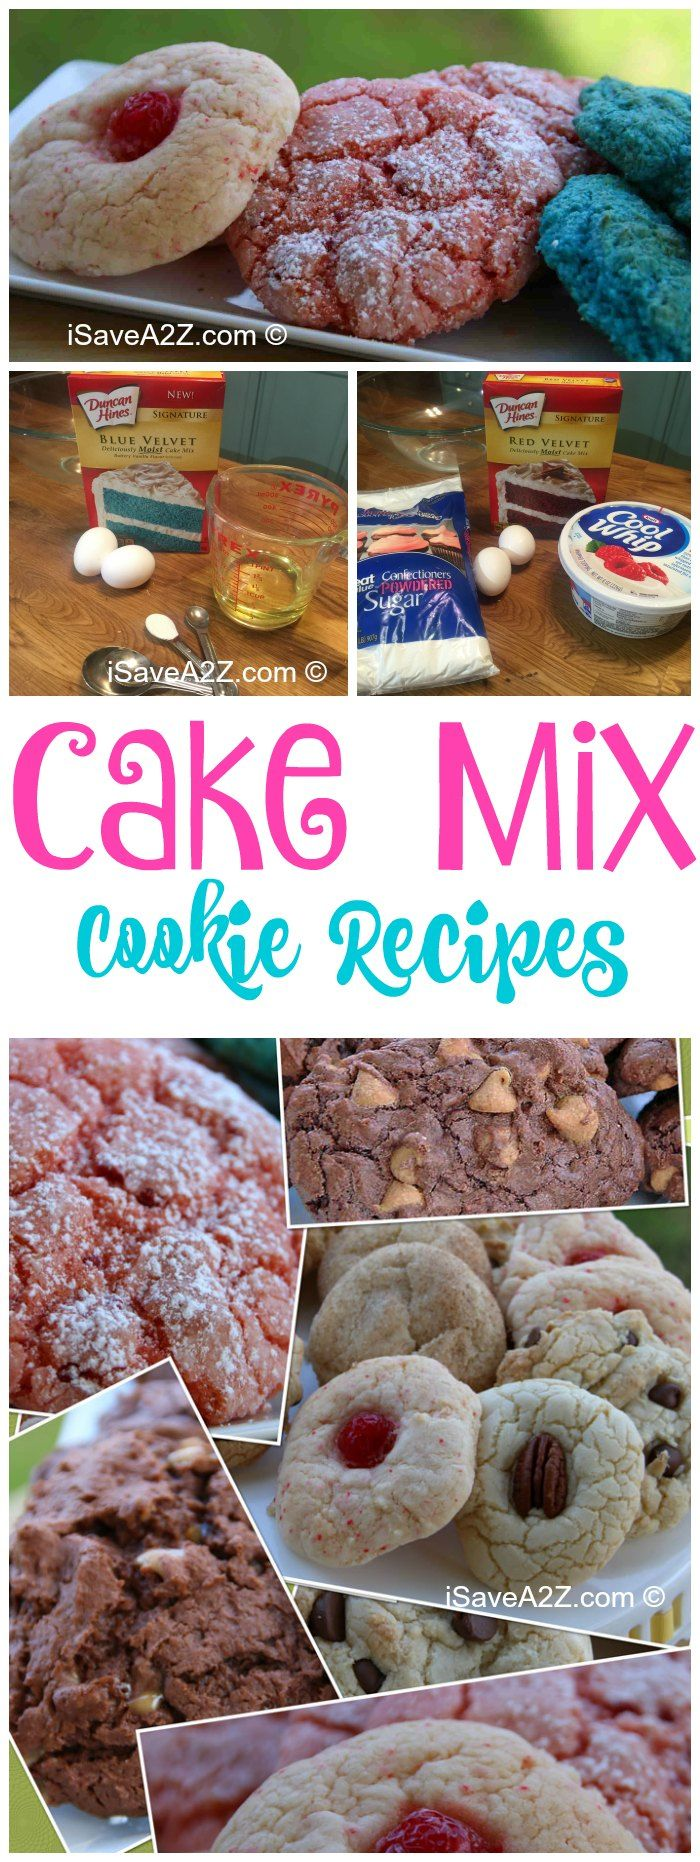 Top 45 Cake Mix Cookie Recipes - it's amazing how light and fluffy these cookies are!  They are the most popular cookies I've ever made!!